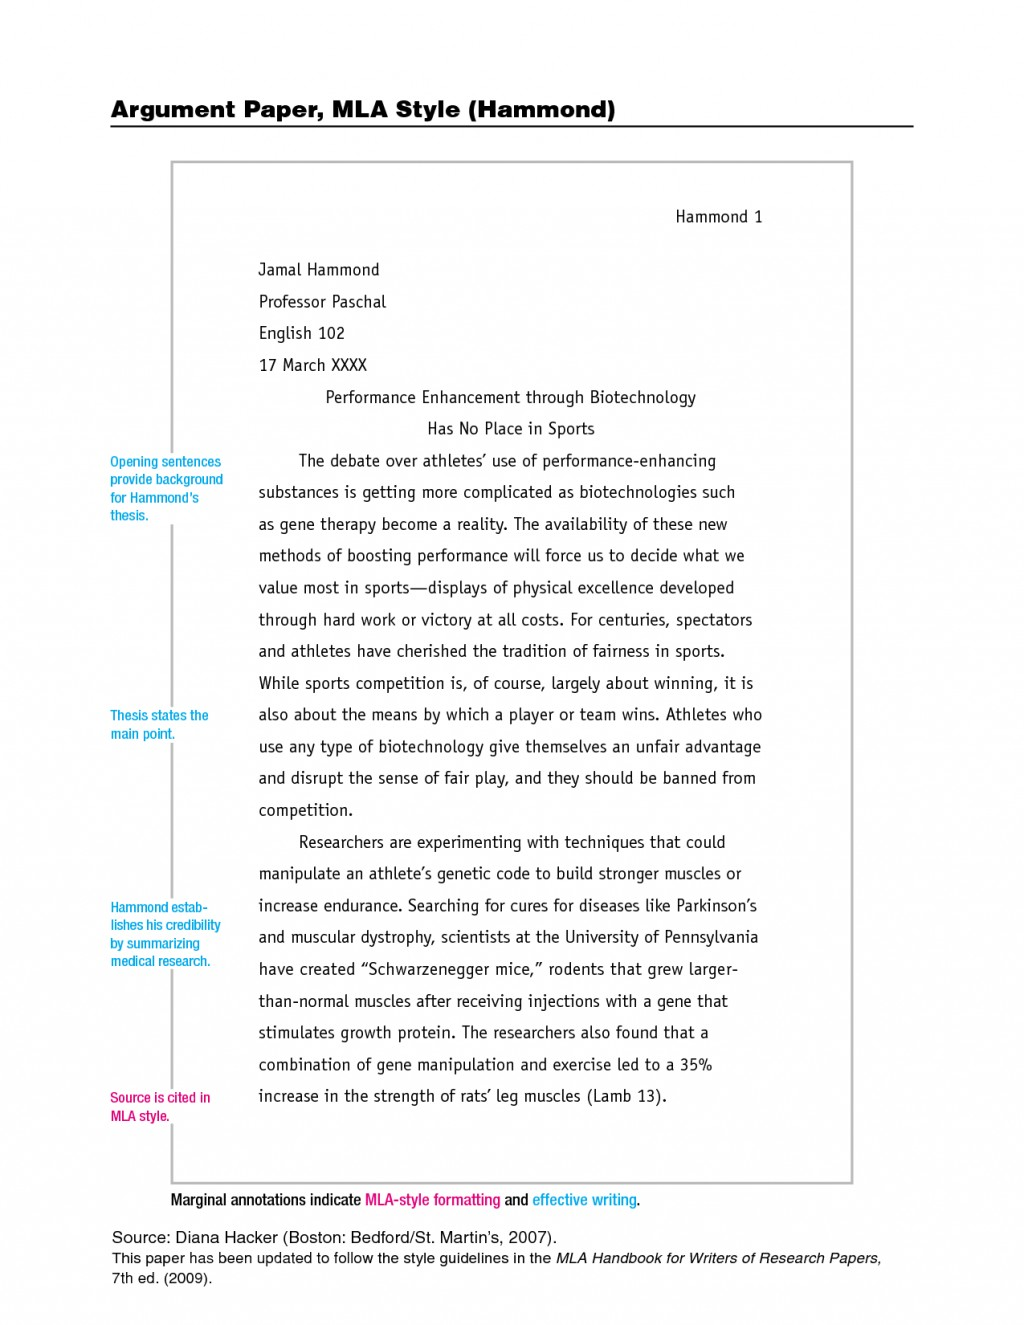 003 Chicago Style Essay Format Unforgettable Sample Template Paper Cover Page Large